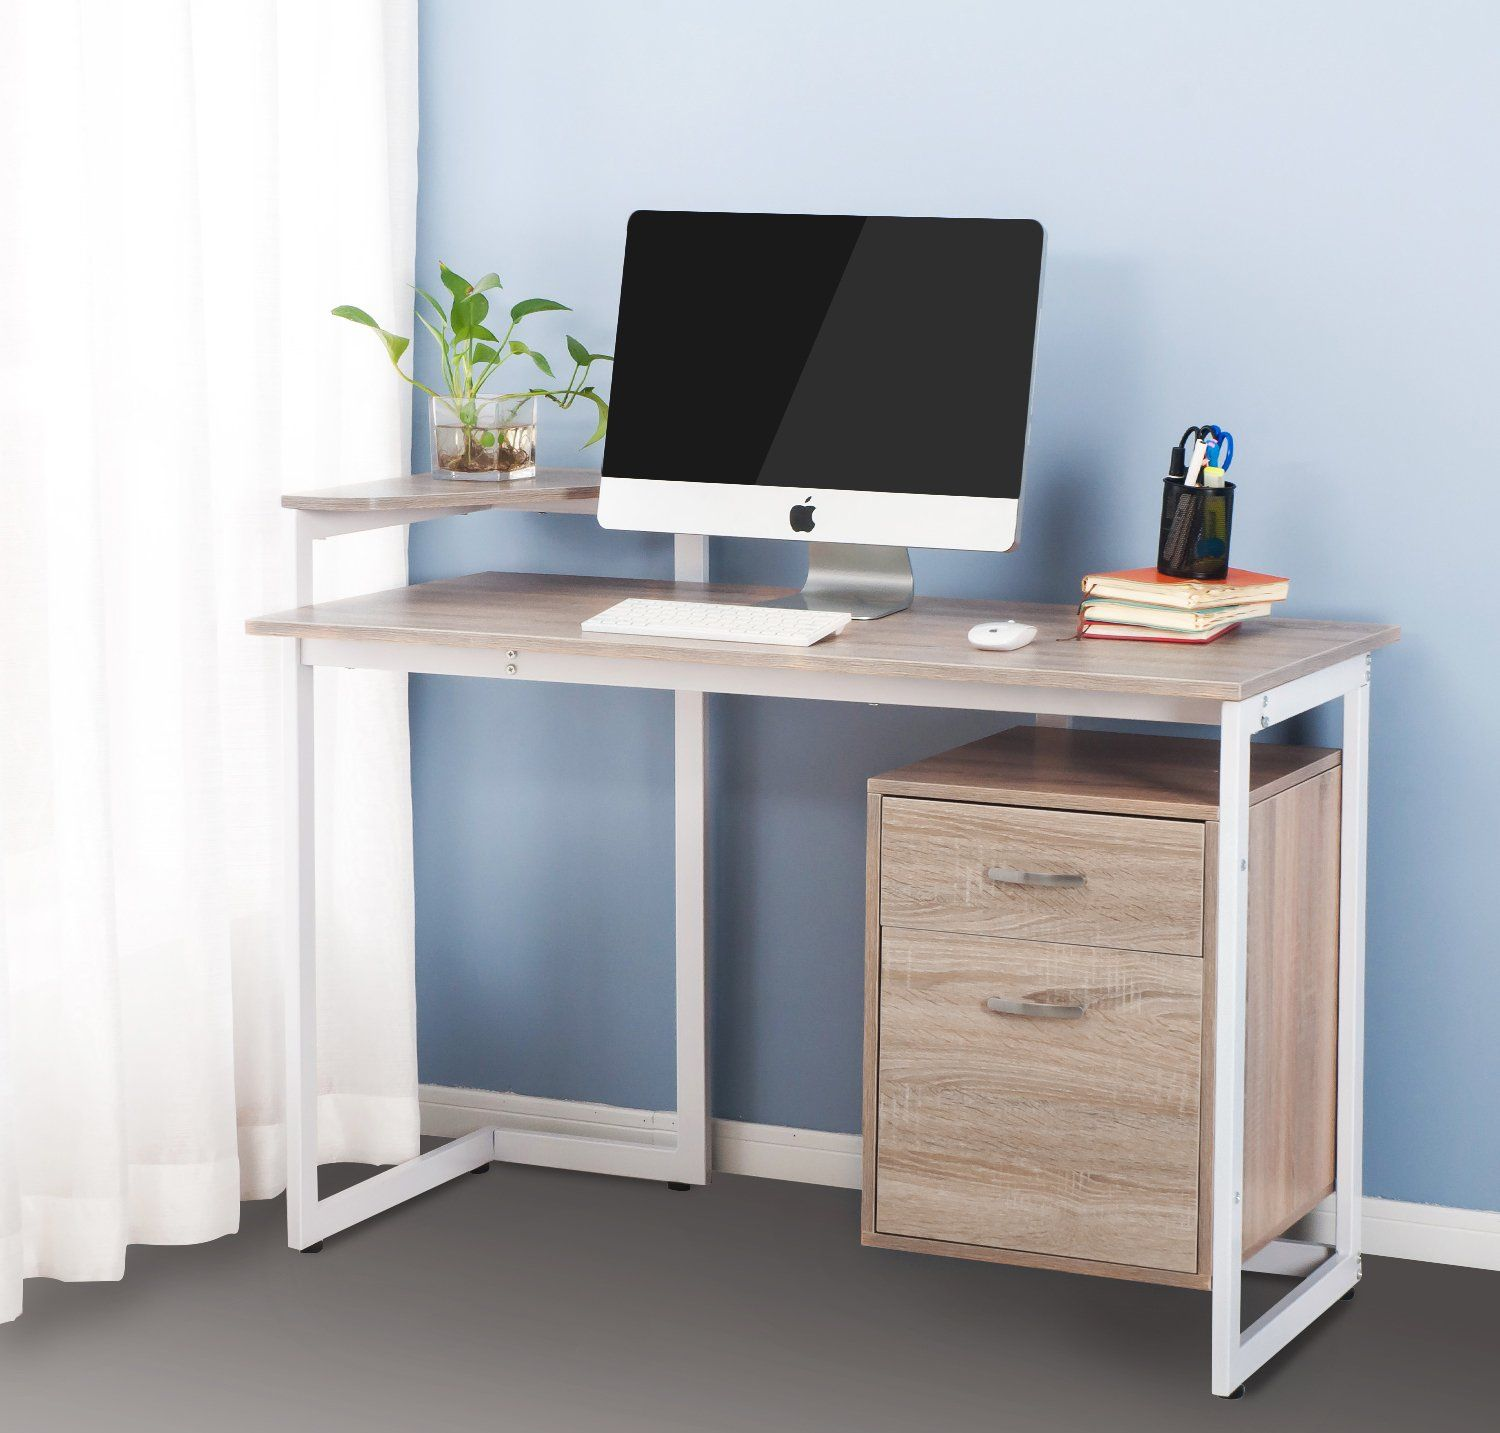 shaped categories decorating office inspirations interesting with grey l remarkable appealing home wooden or gray counter shape for images elegant brown ideas on drawers desk